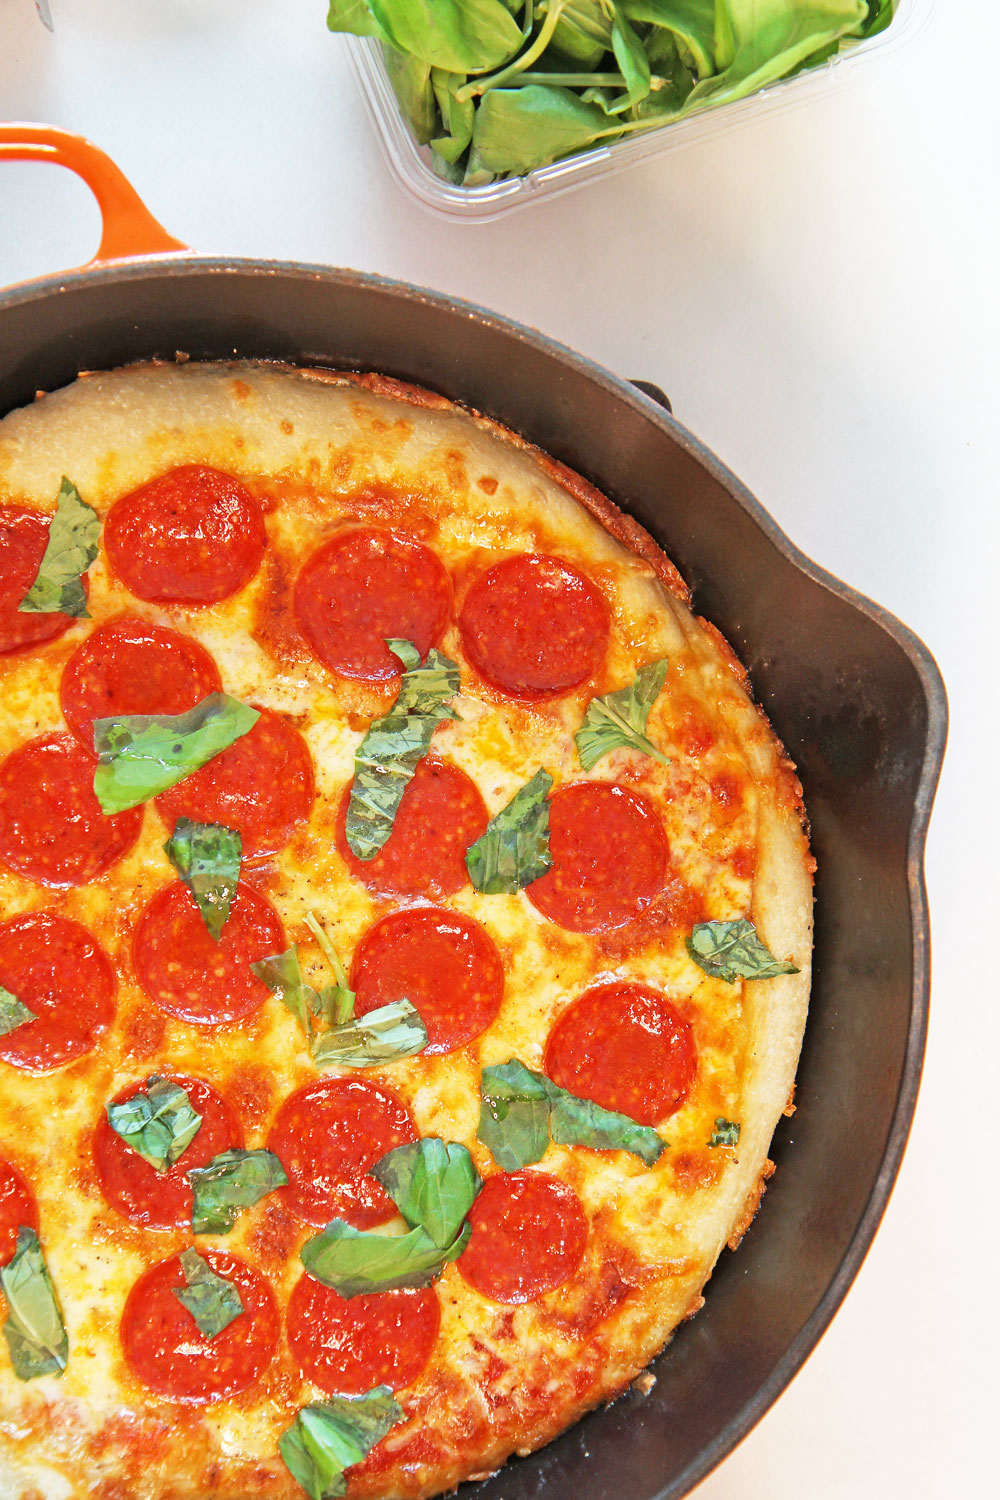 How to Make Pizza in a Cast Iron Pan. This is super easy. Just get pizza dough, marinara, mozzarella cheese, pepperoni, and basil. Pizza making is so easy and this tastes just like NYC pizza. Happy cooking! www.ChopHappy.com #howtomakepizza #pizza